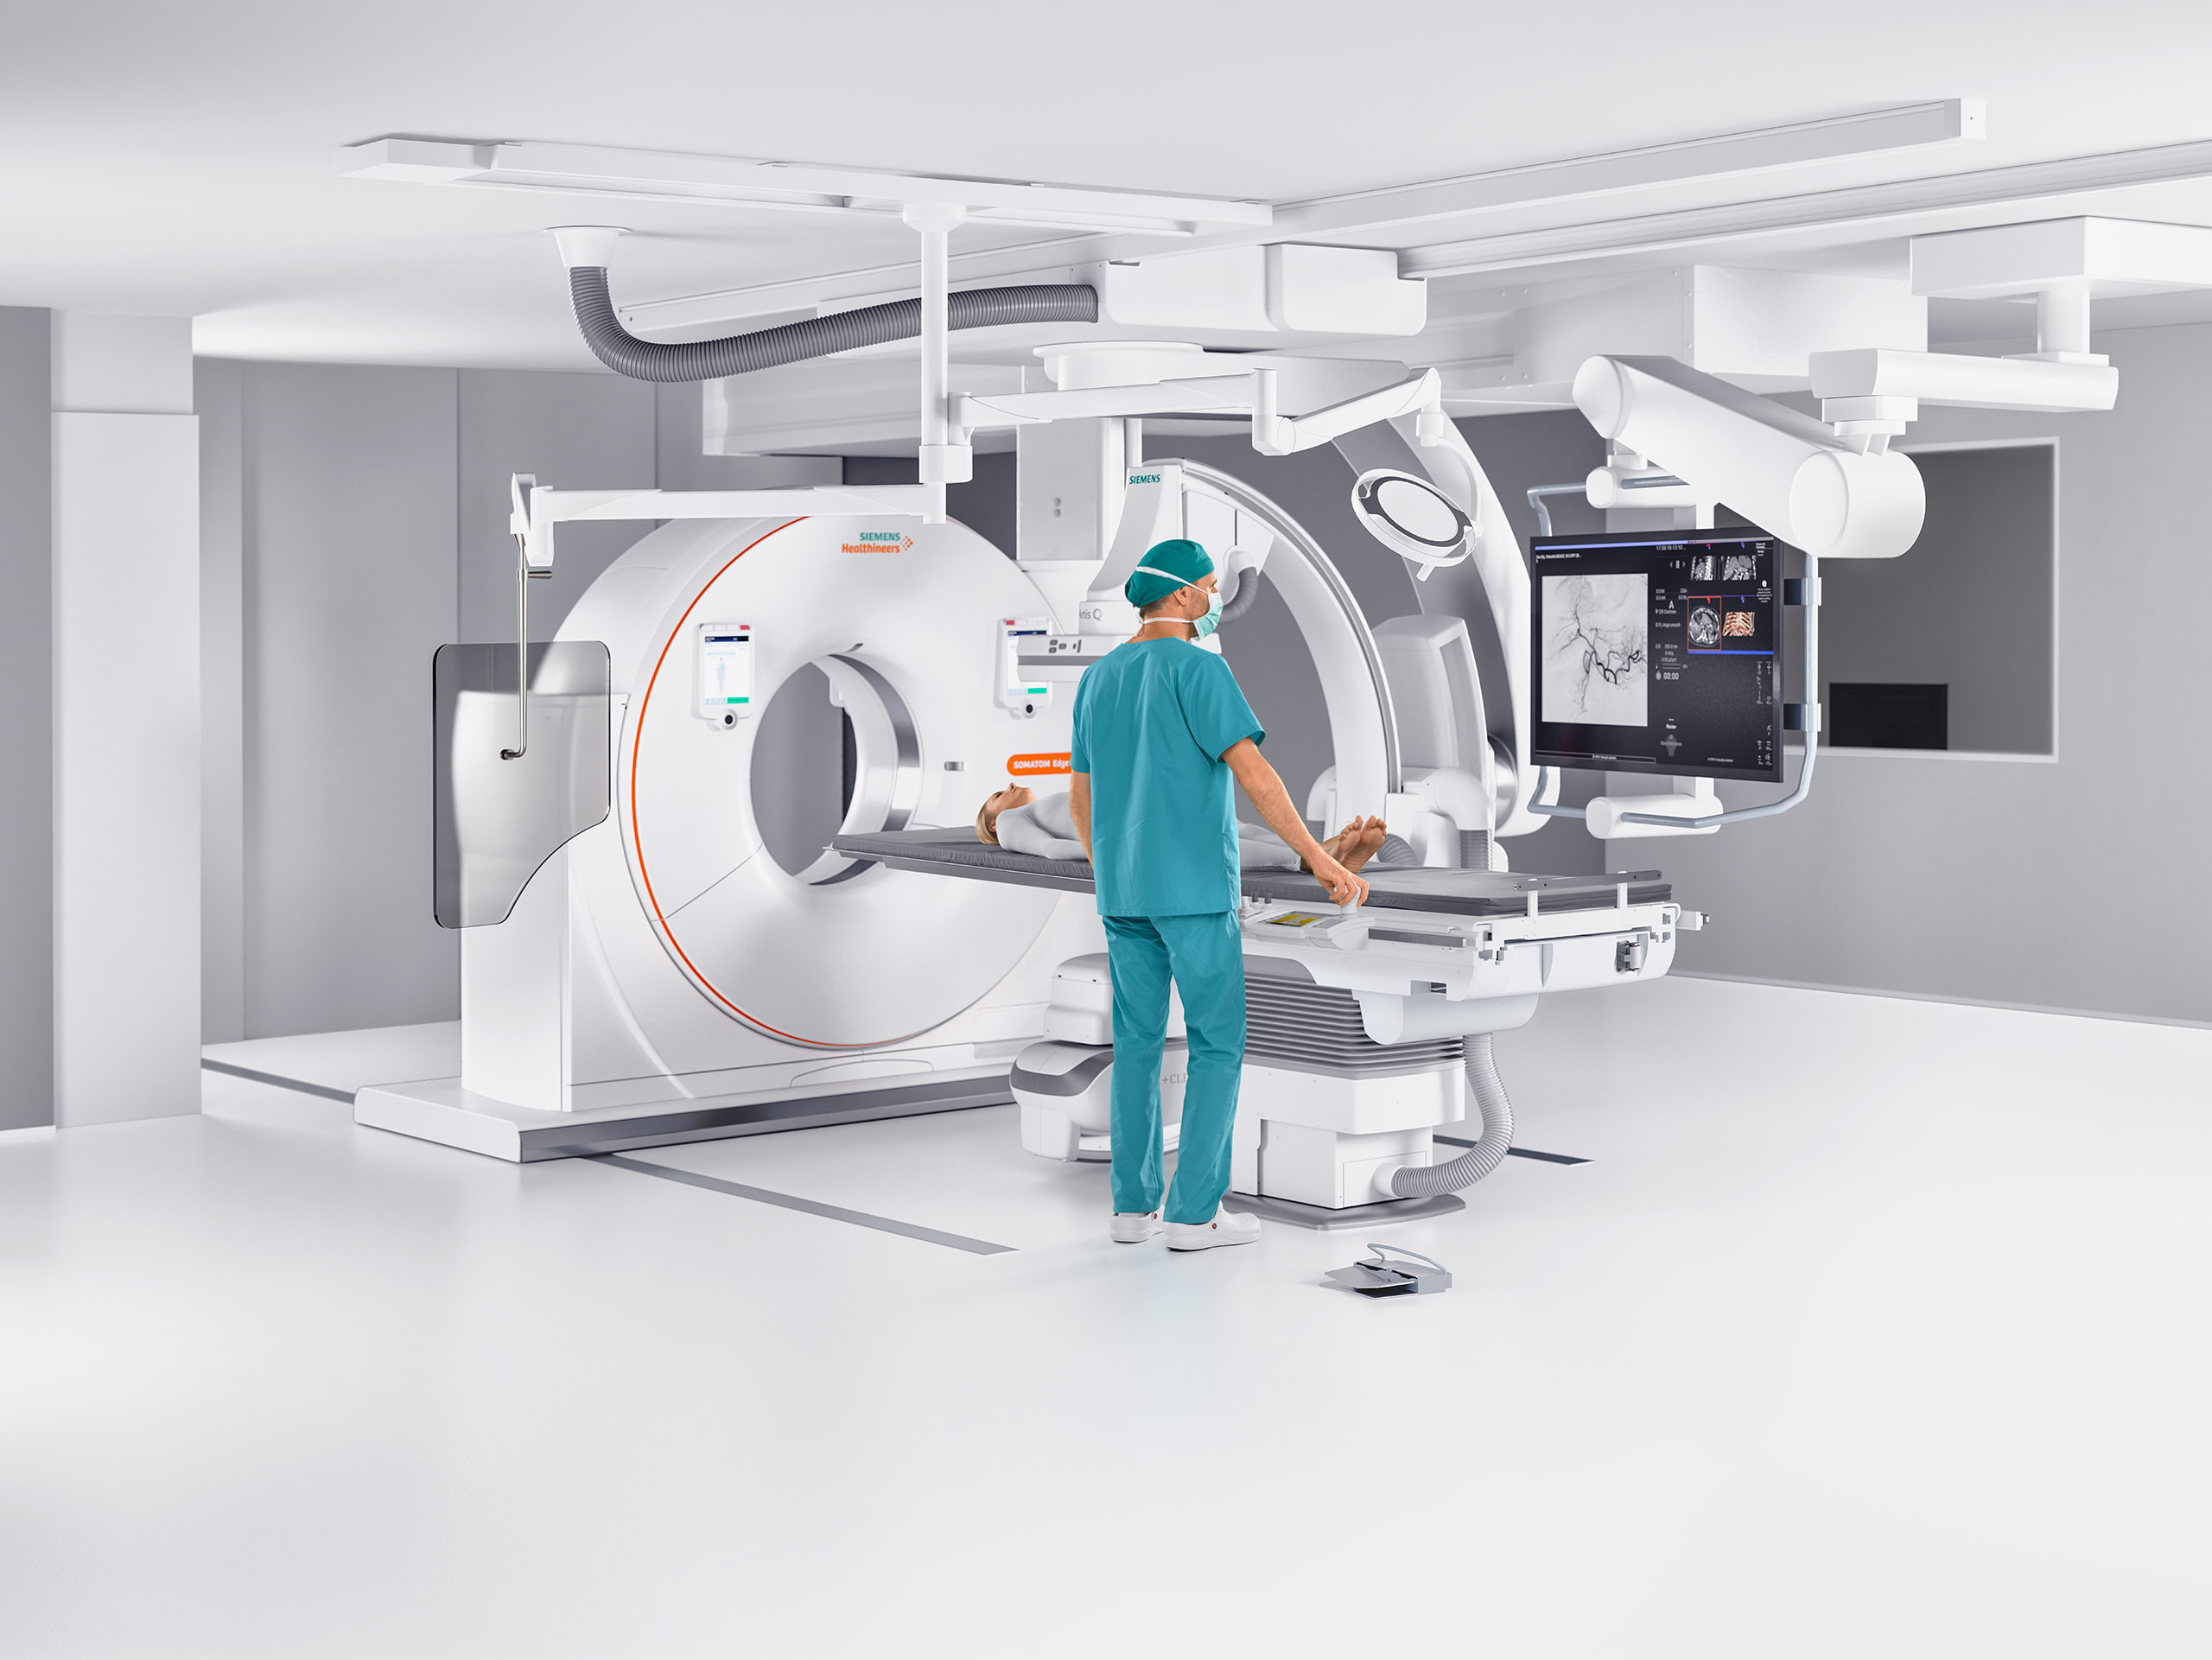 Siemens' nexaris Therapy platform, introduced as a work-in-progress at RSNA 2017, combines the modalities of angiography, CT and MRI. #RSNA2017, #RSNA17